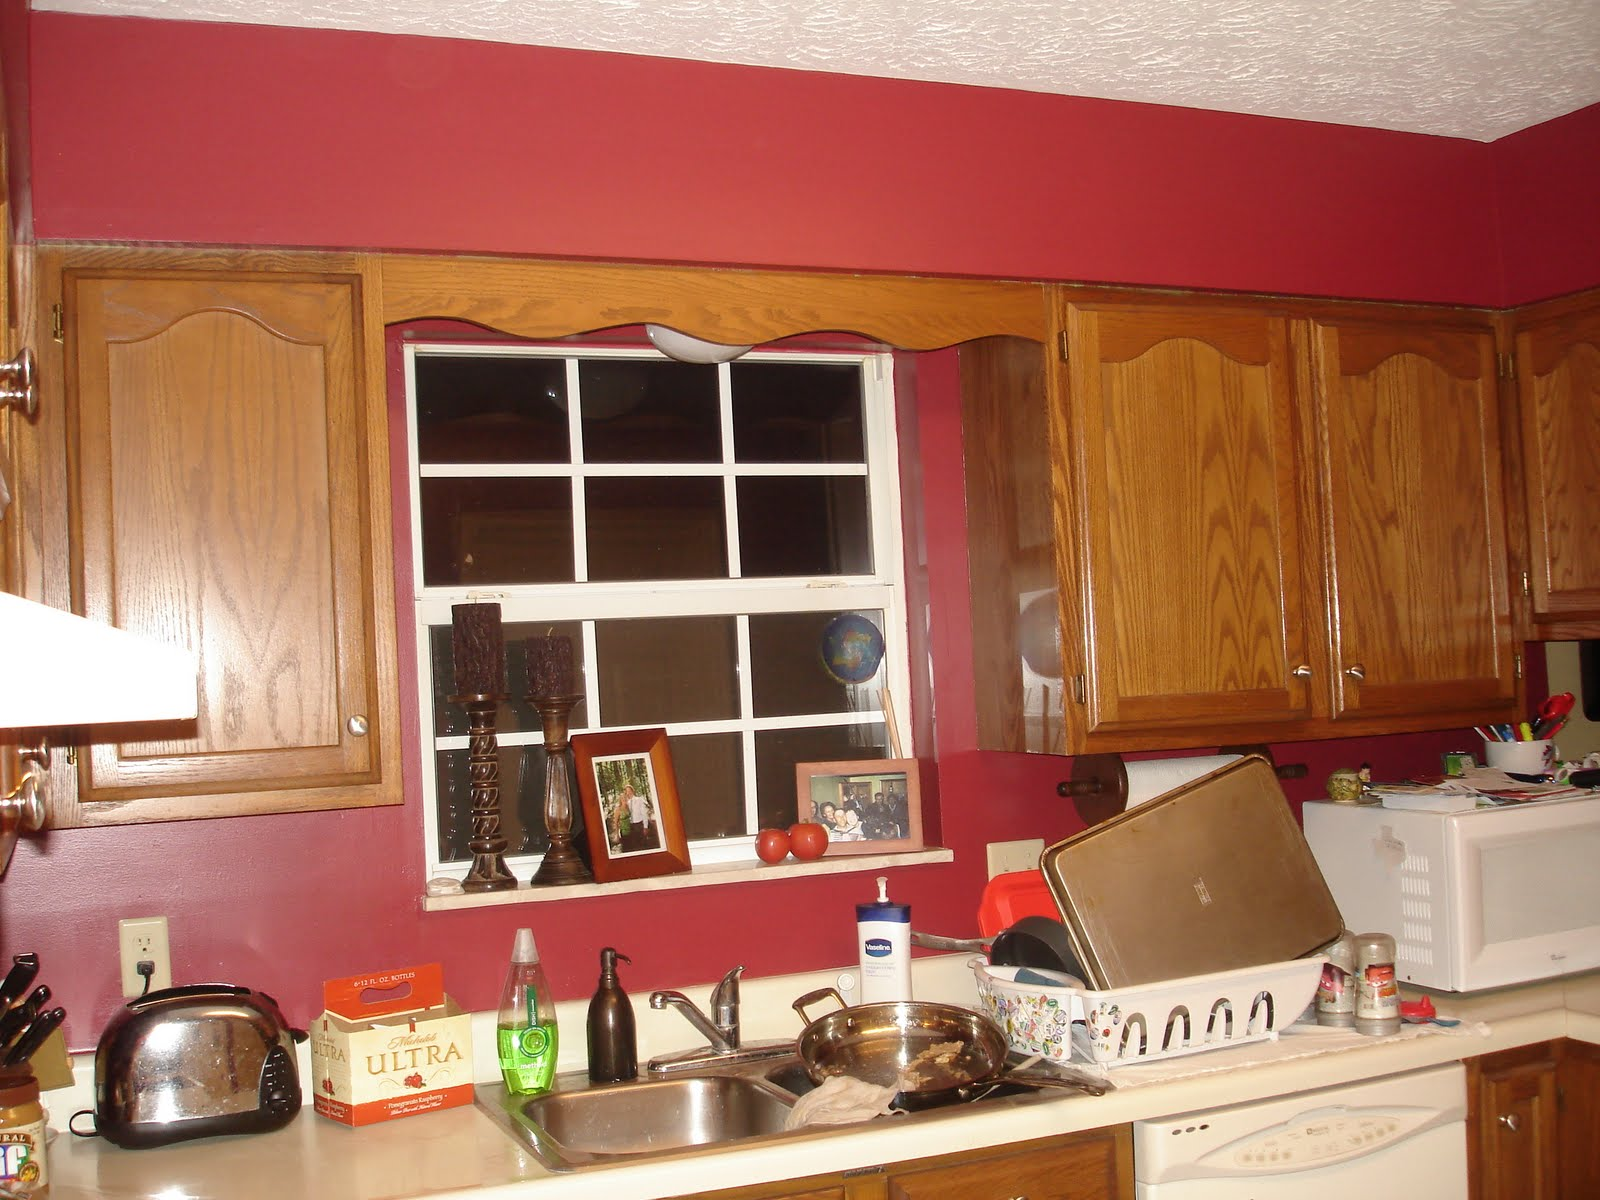 Painting kitchen cabinets color schemes choose ideas for White cabinets red walls kitchen